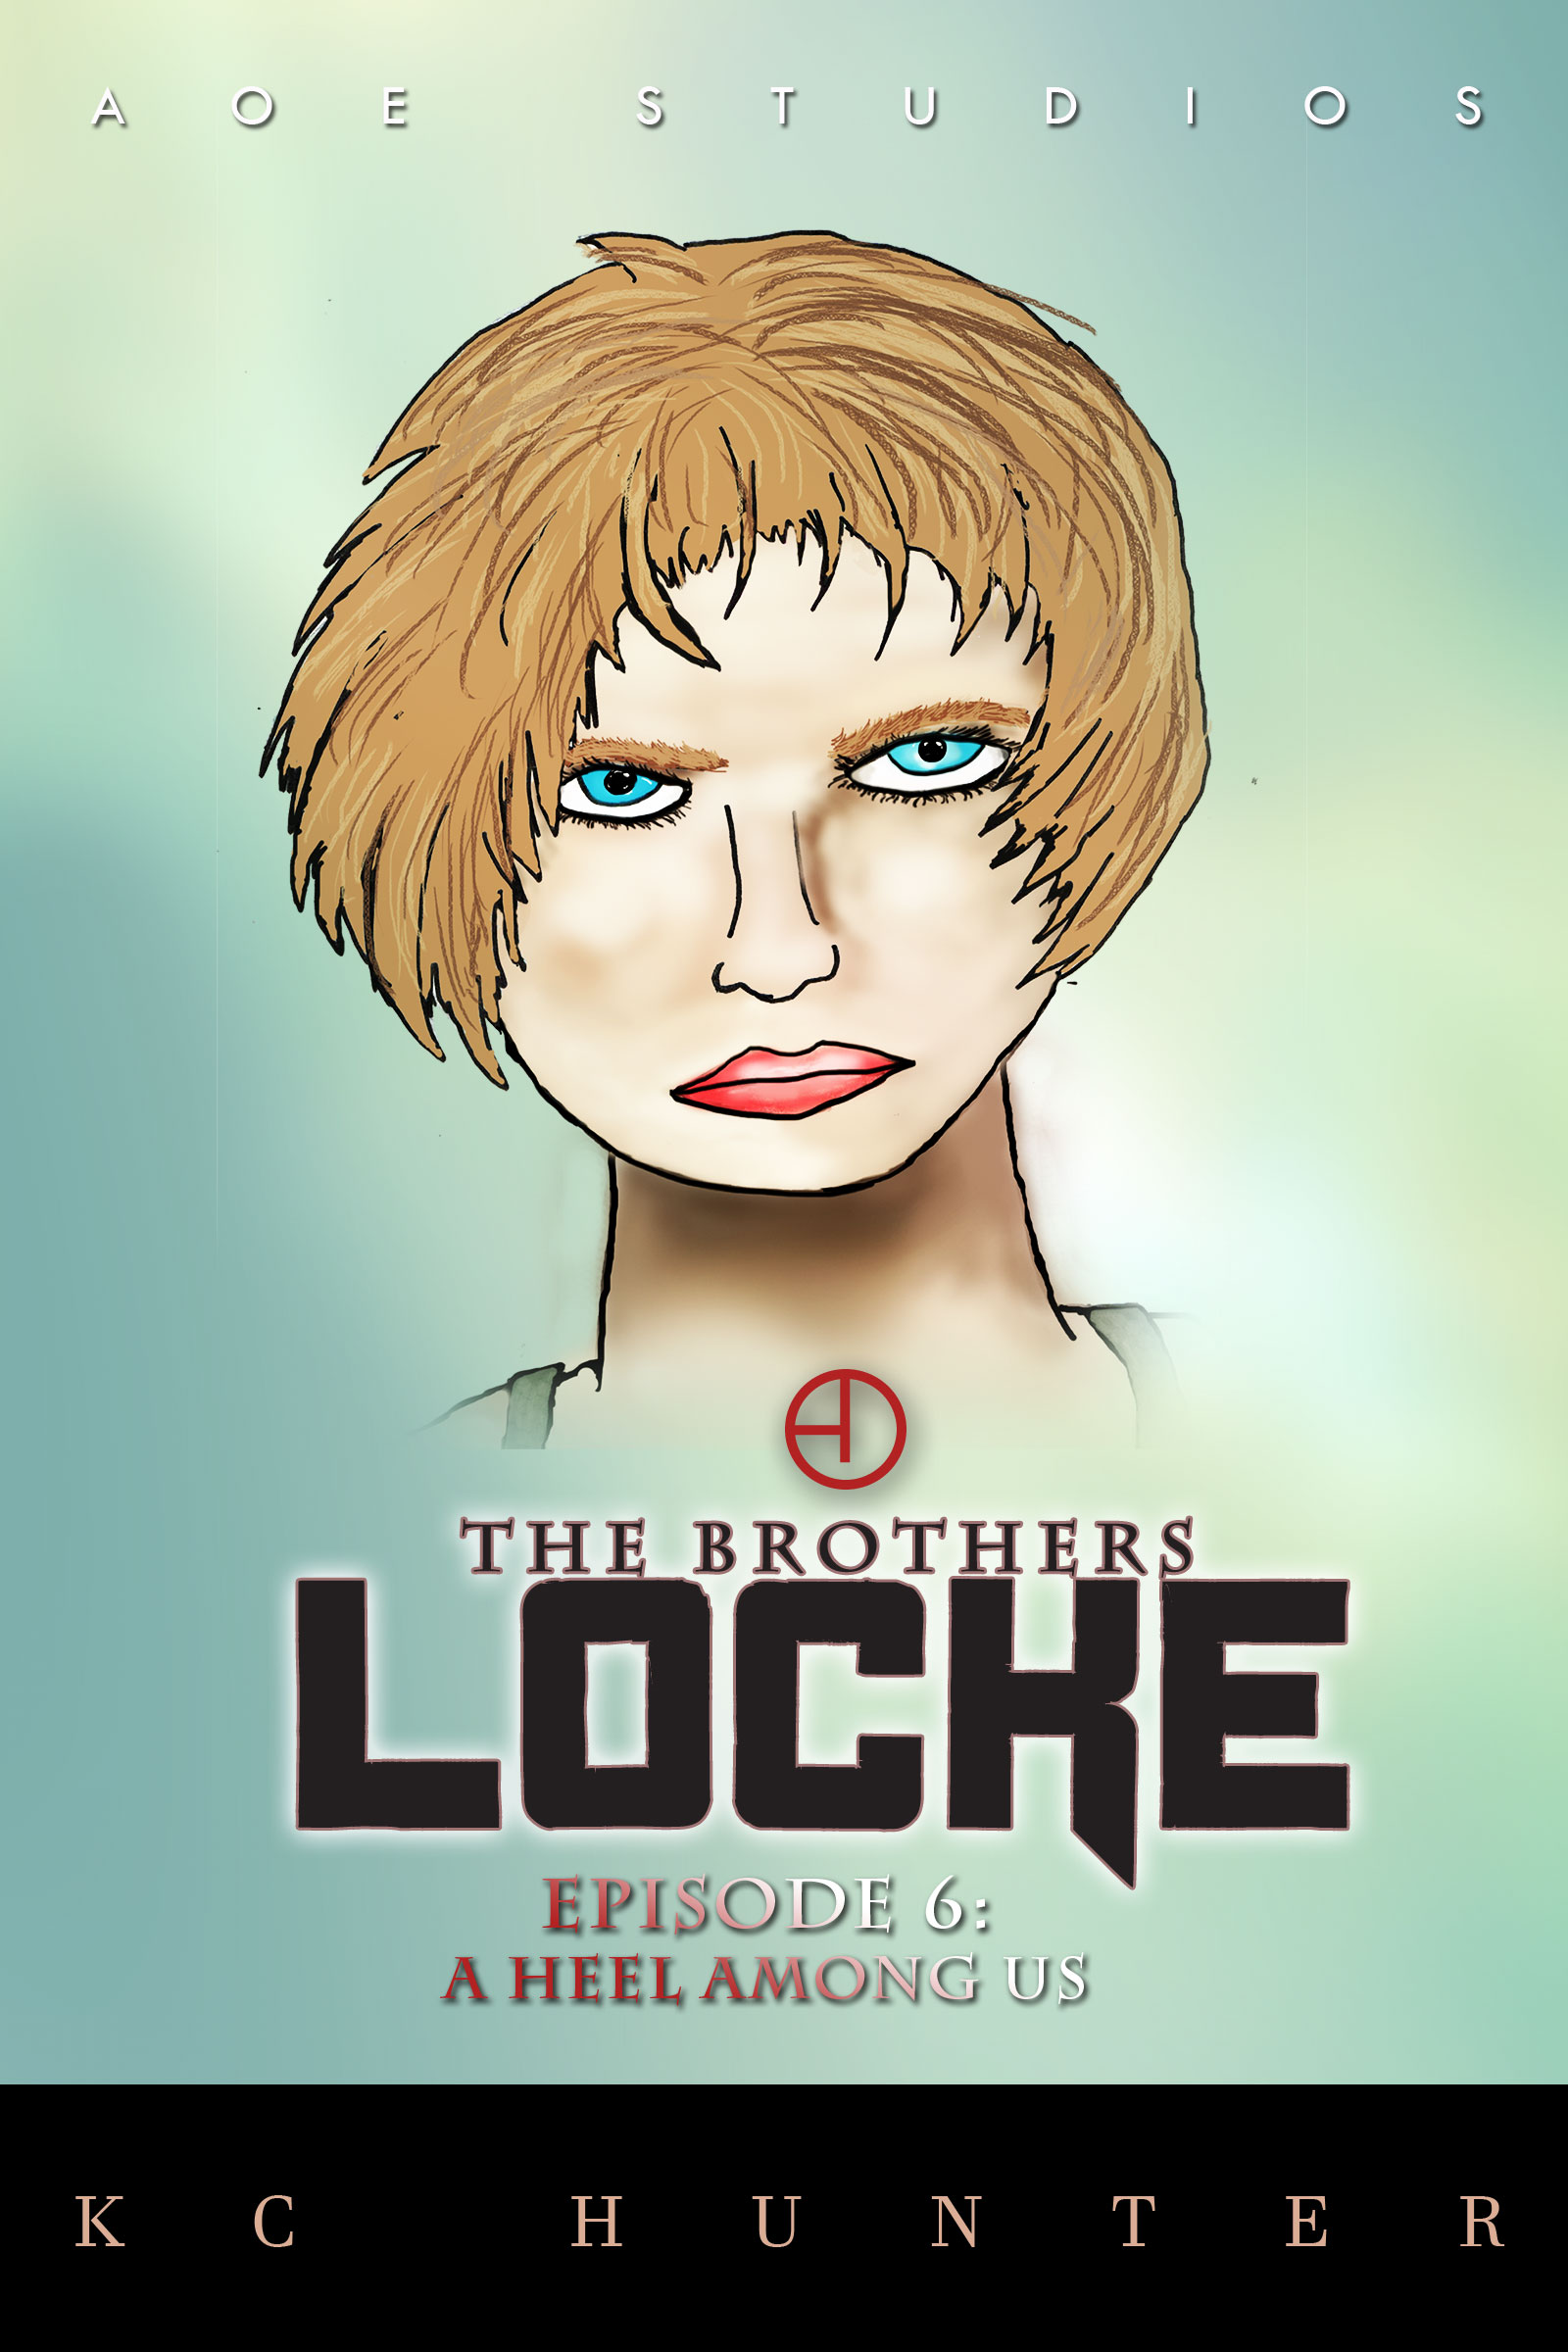 The Brothers Locke Episode 6 Book Cover Image